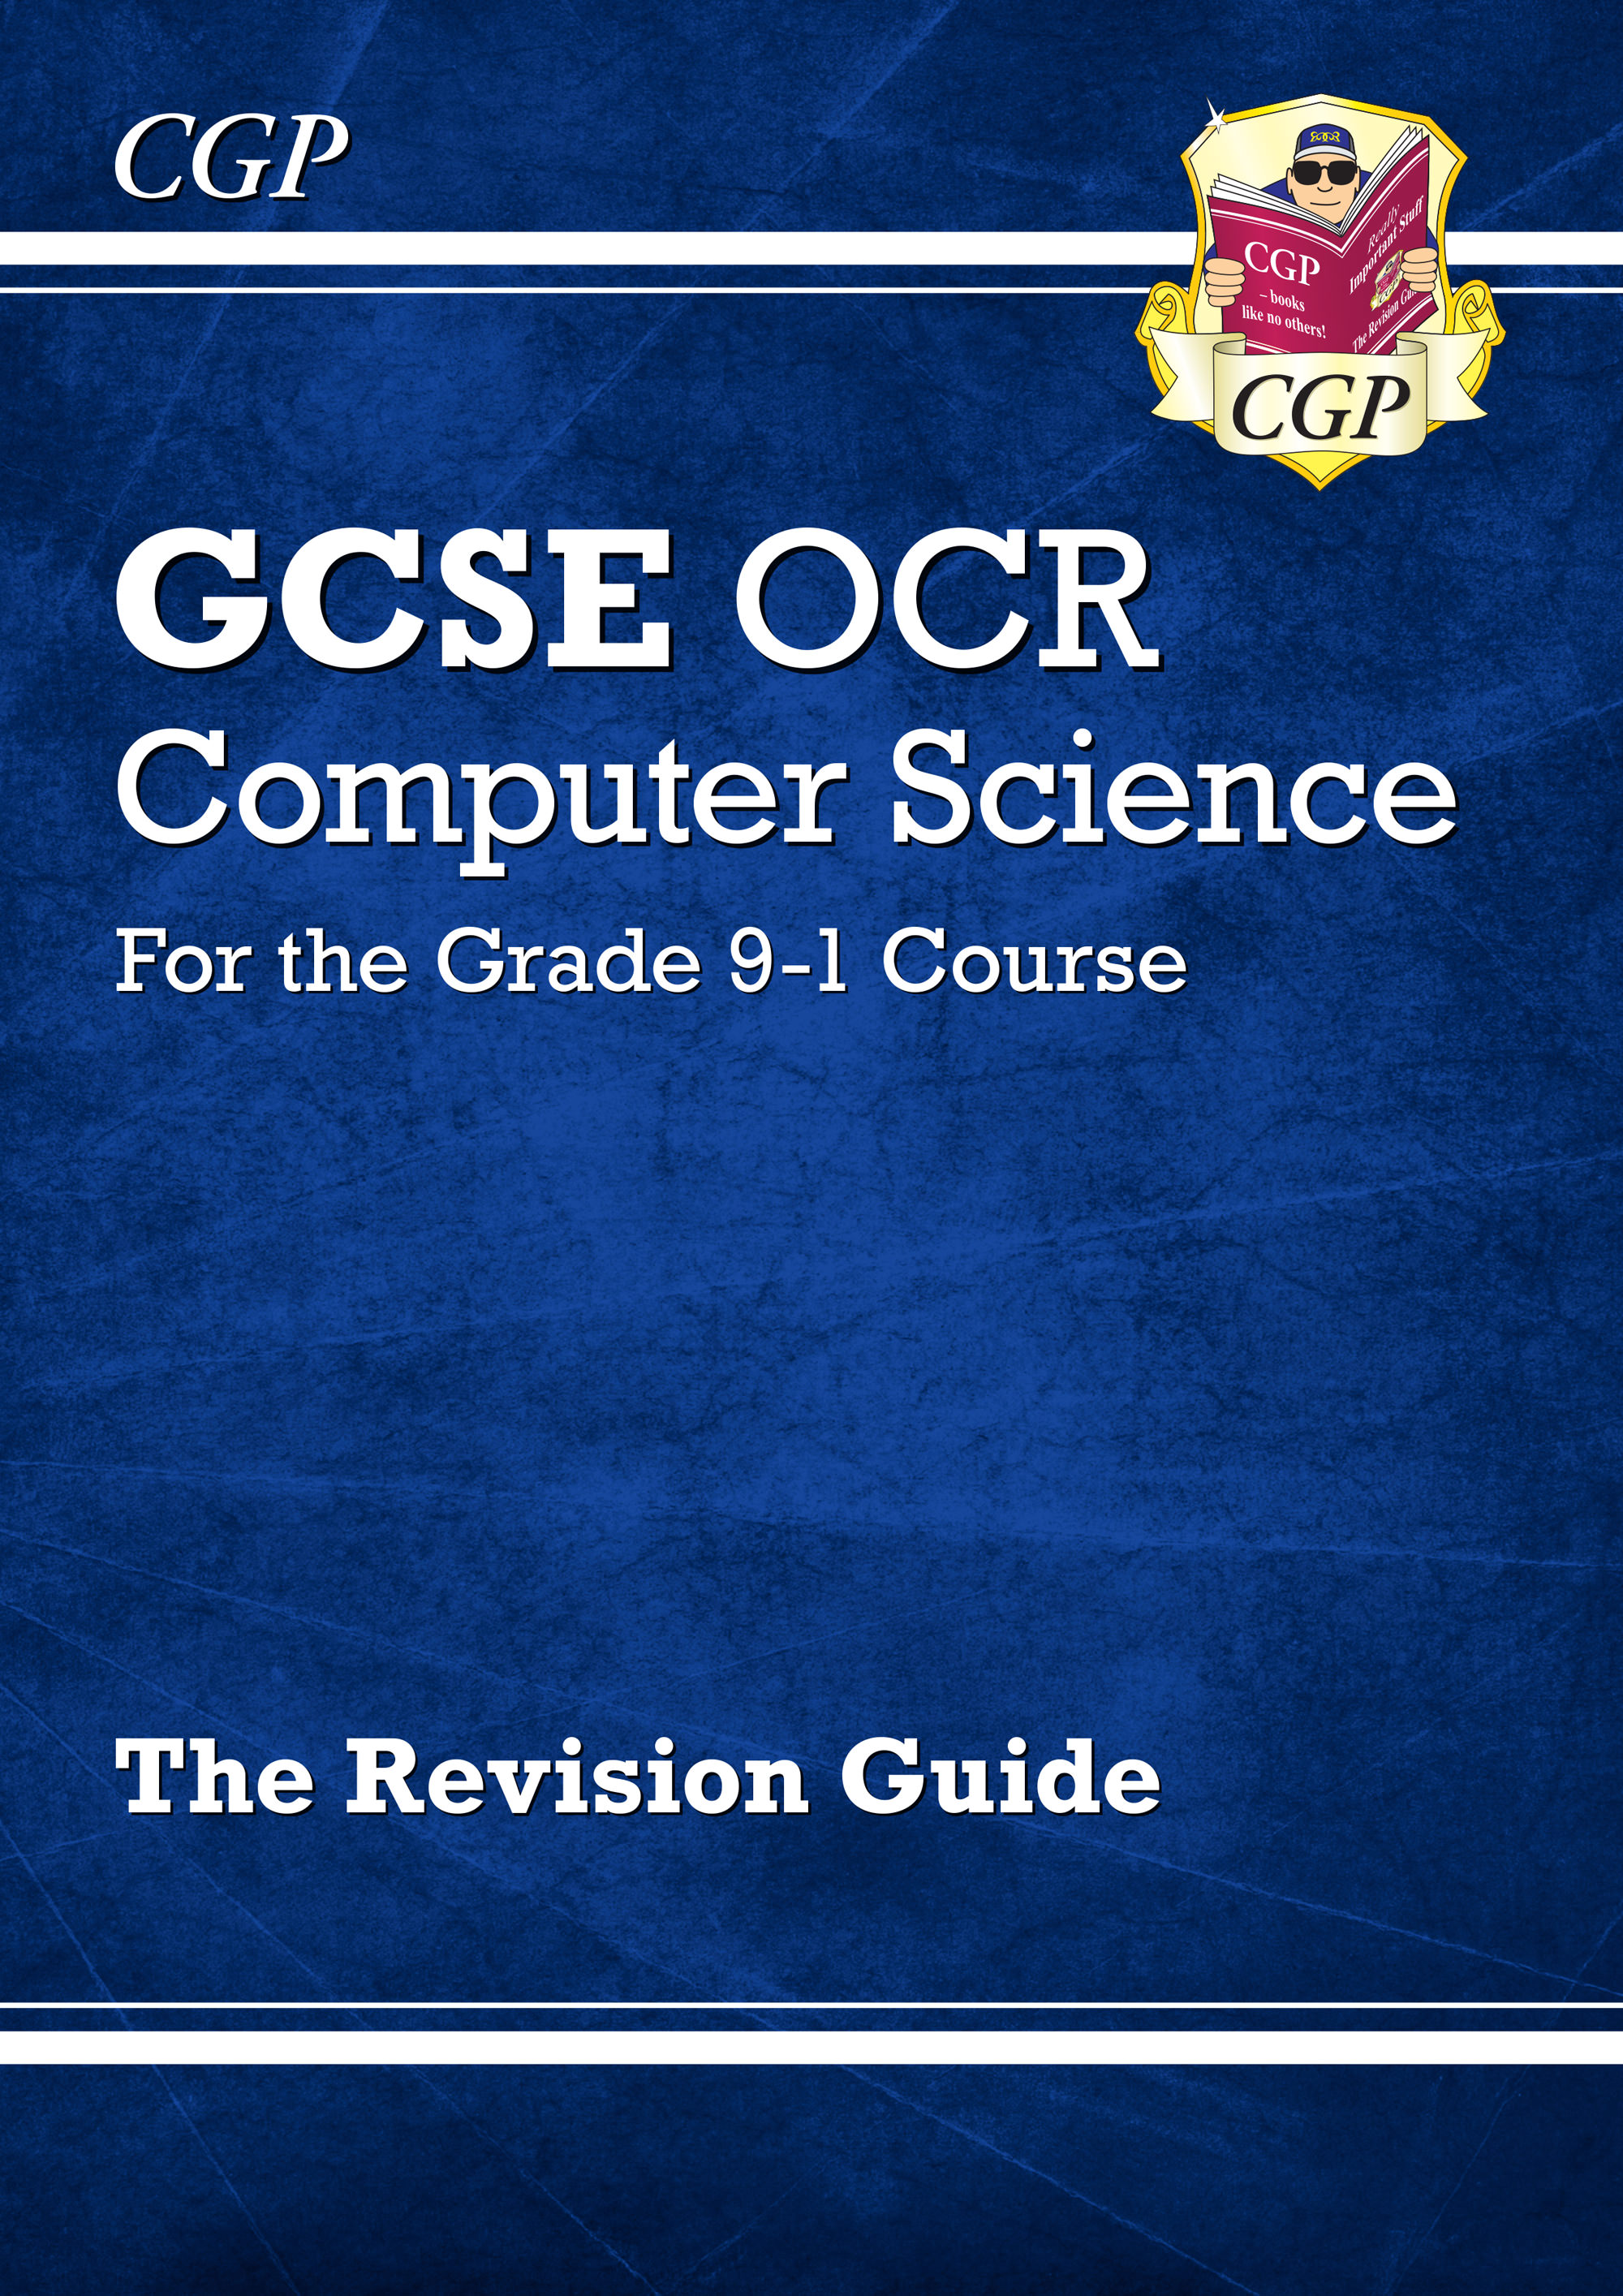 COR41D - GCSE Computer Science OCR Revision Guide - for the Grade 9-1 Course (Online Edition)